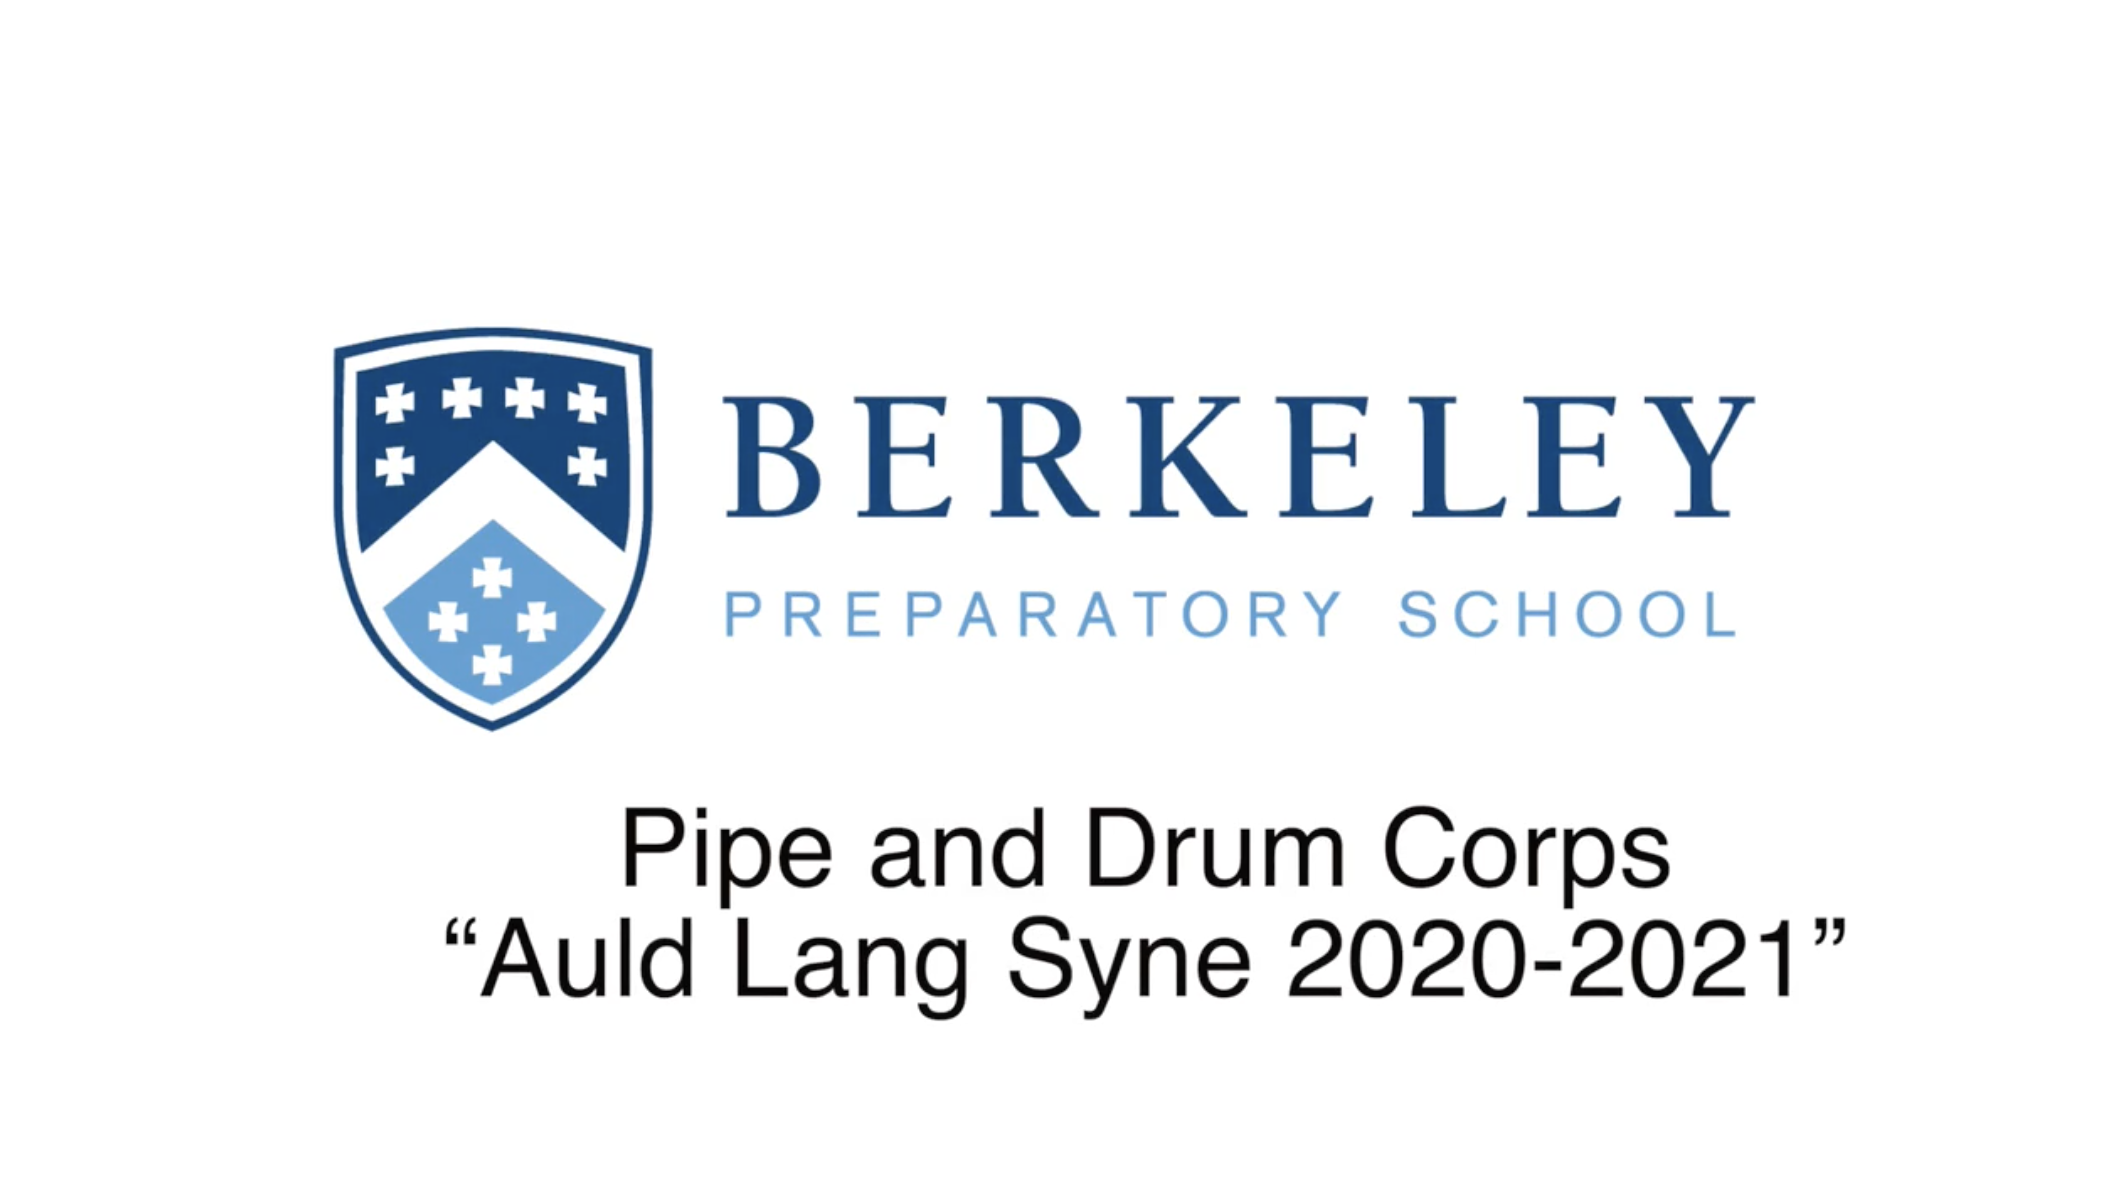 Pipe and Drum Corps perform Auld Lang Syne